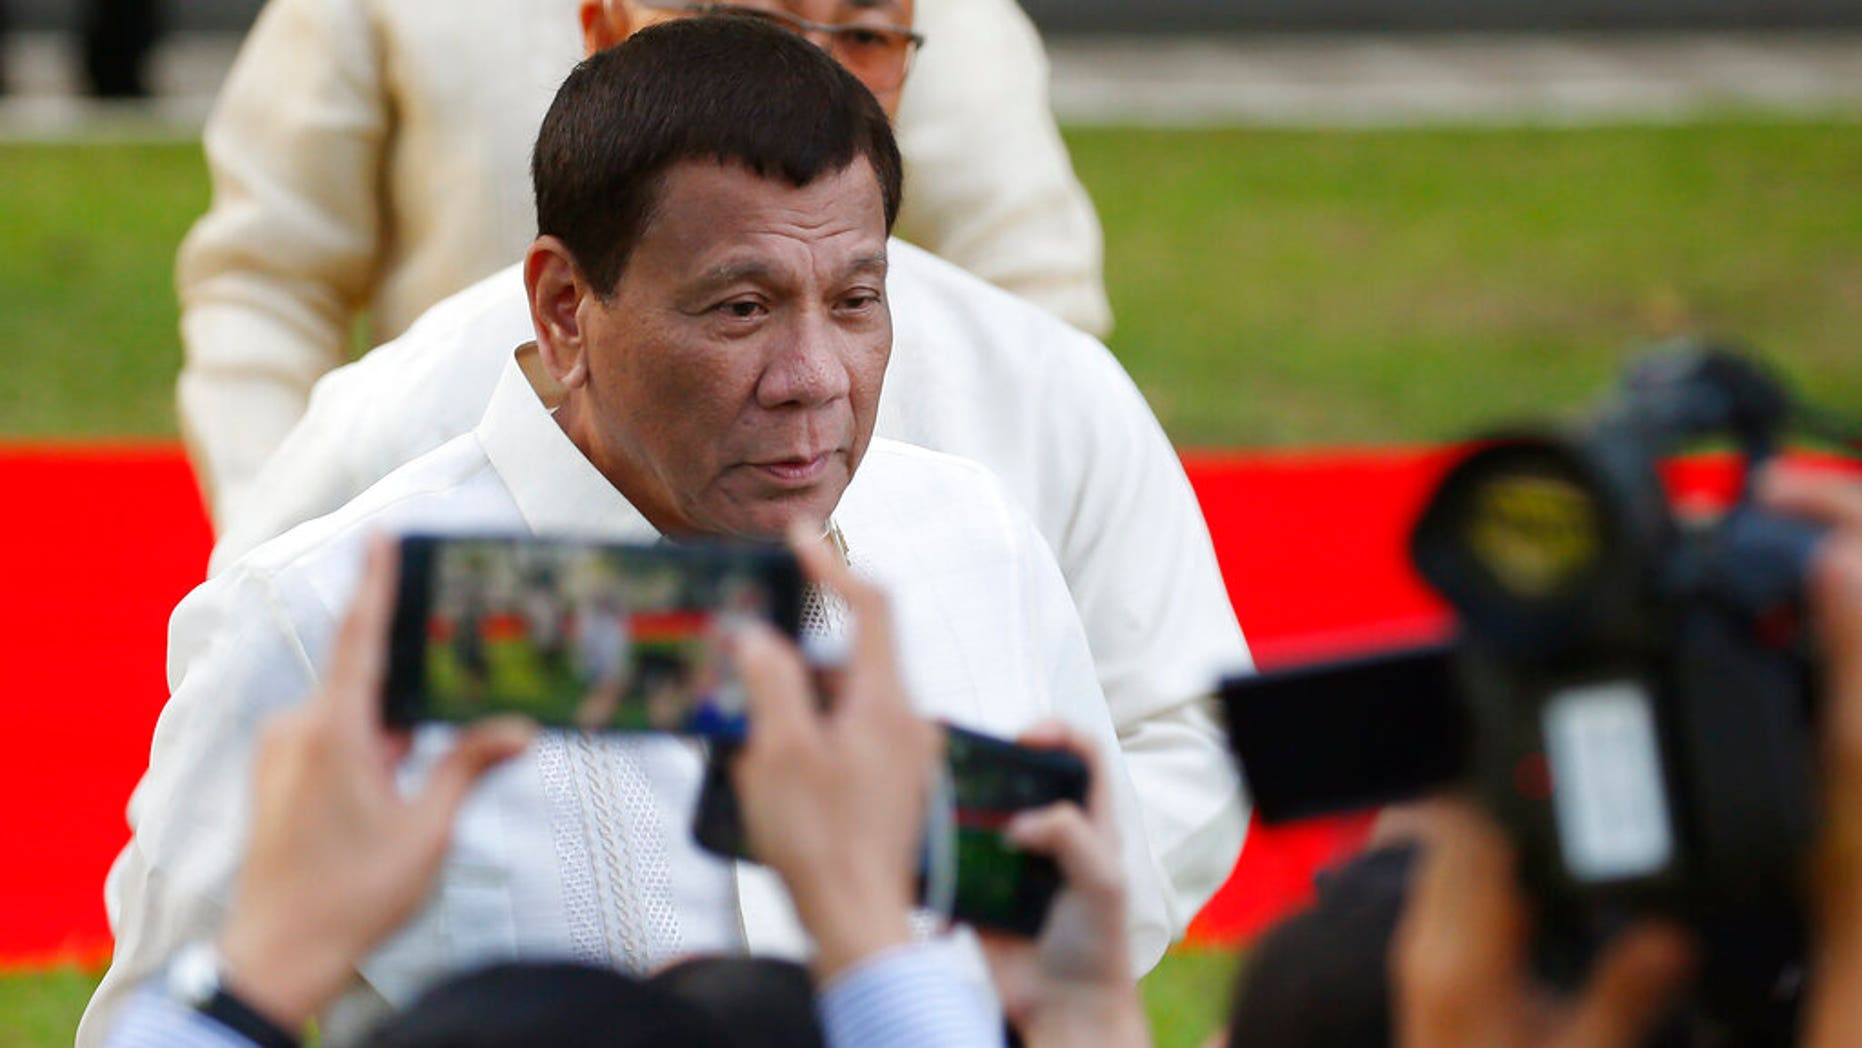 Philippine President Rodrigo Duterte talks to the media prior to a welcome ceremony for visiting Sri Lankan President Maithripala Sirisena Wednesday, Jan. 16, 2019, at the Presidential Palace grounds in Manila, Philippines.